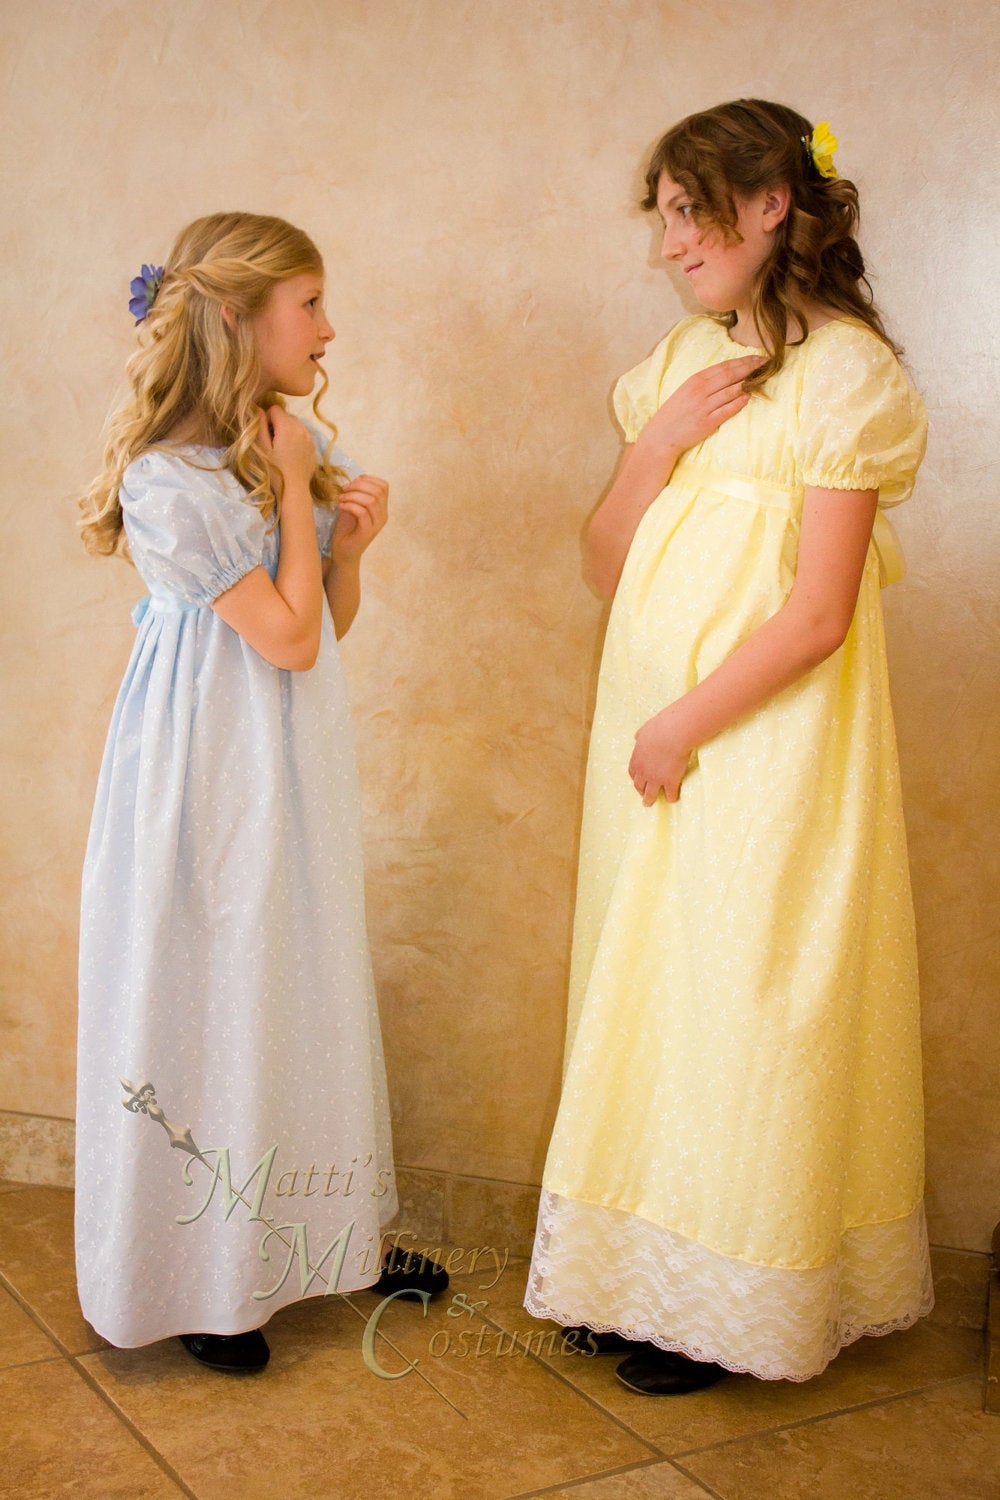 Eyelet Regency Jane Austen Girl Childrens Ball Gown Dress CUSTOM your color choice